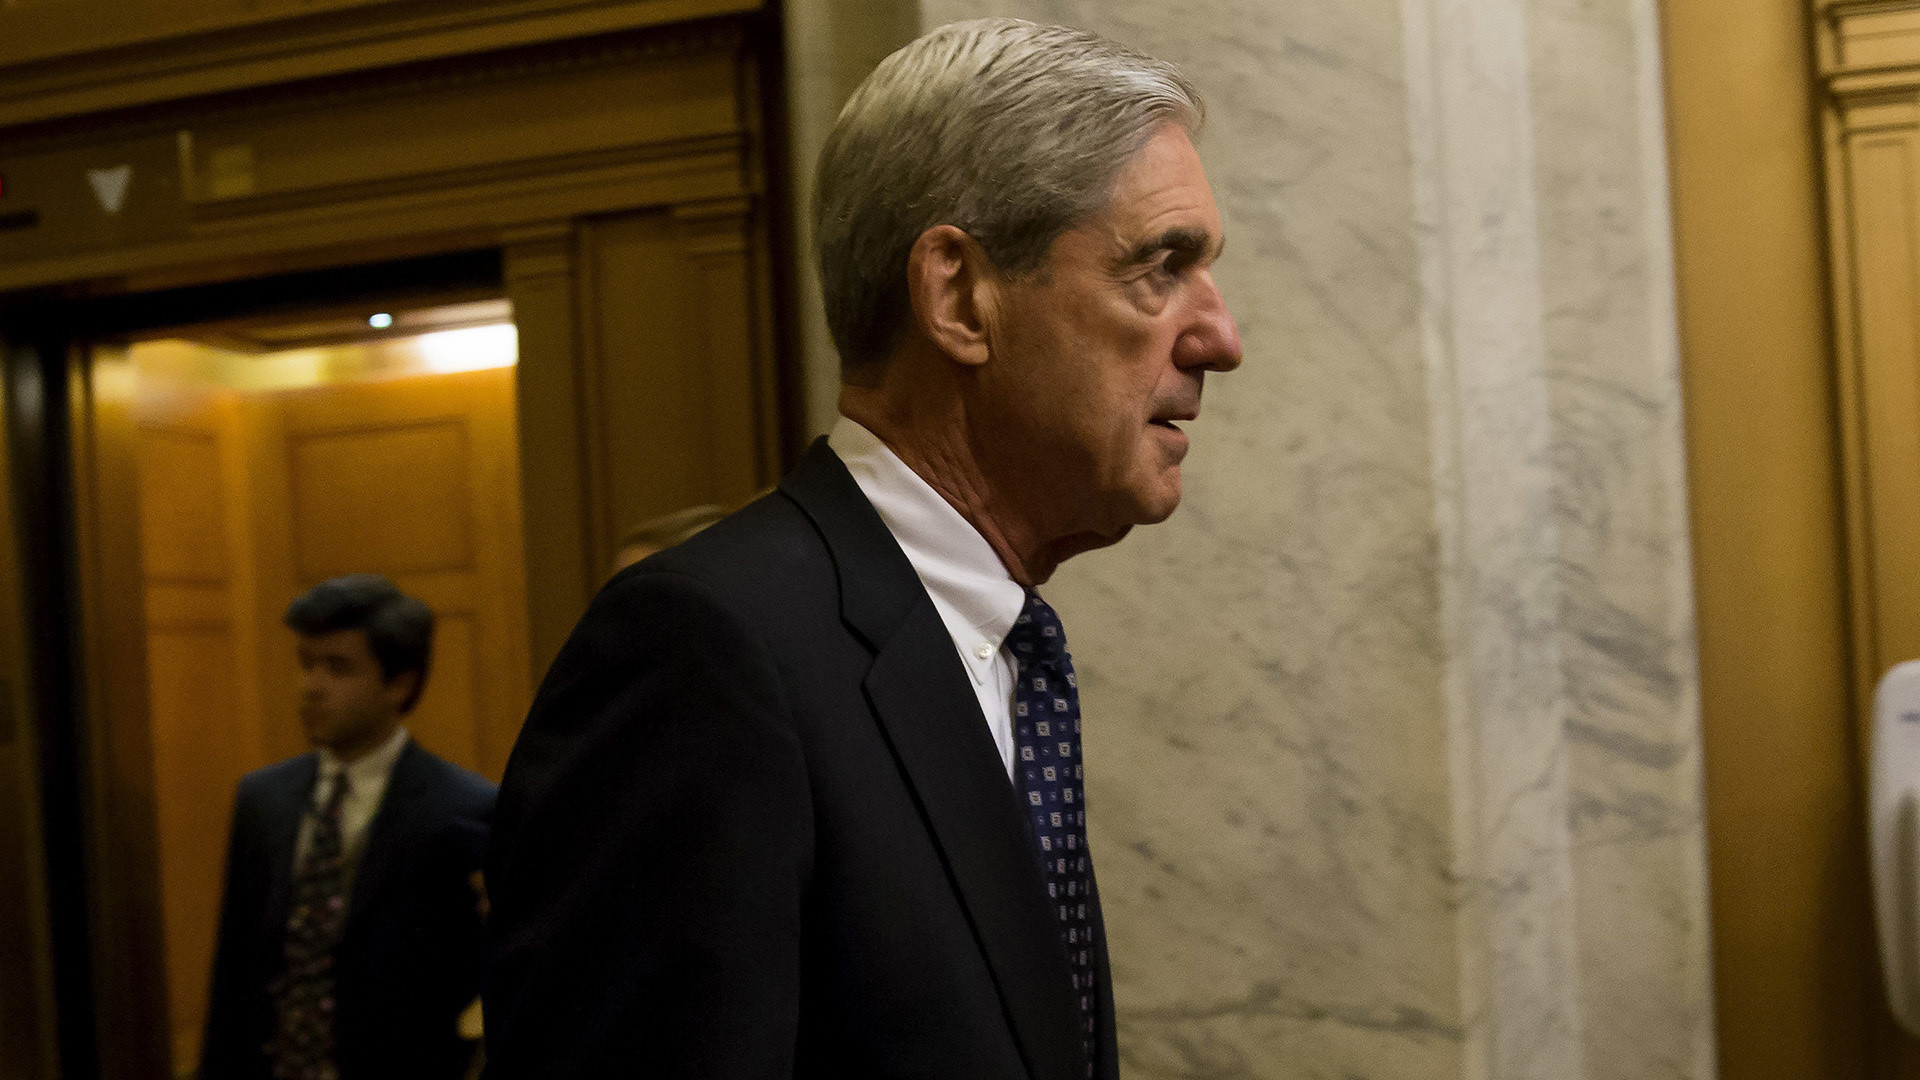 On May 17, 2019, the Mueller probe officially entered its second year — and experts say its still in the starting stages. Its unclear how close Mueller may be to concluding the case, but past special counsel investigations have taken multiple years recommendations